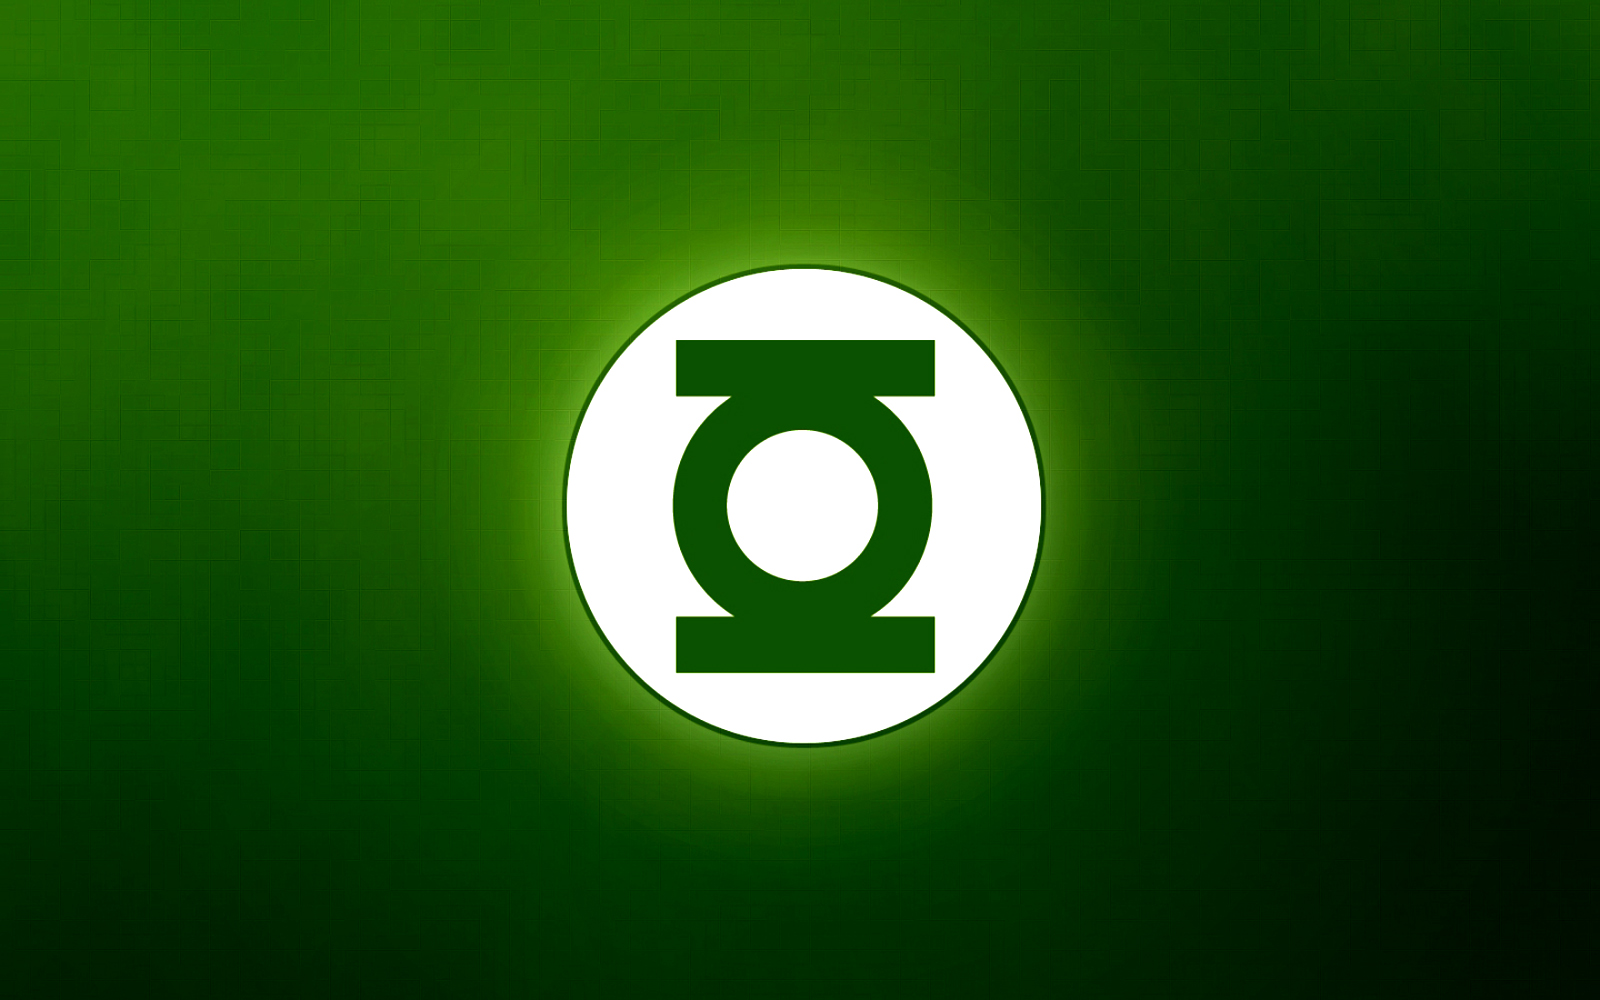 Central Wallpaper Green Lantern DC Comics HD Wallpaper 1600x1000